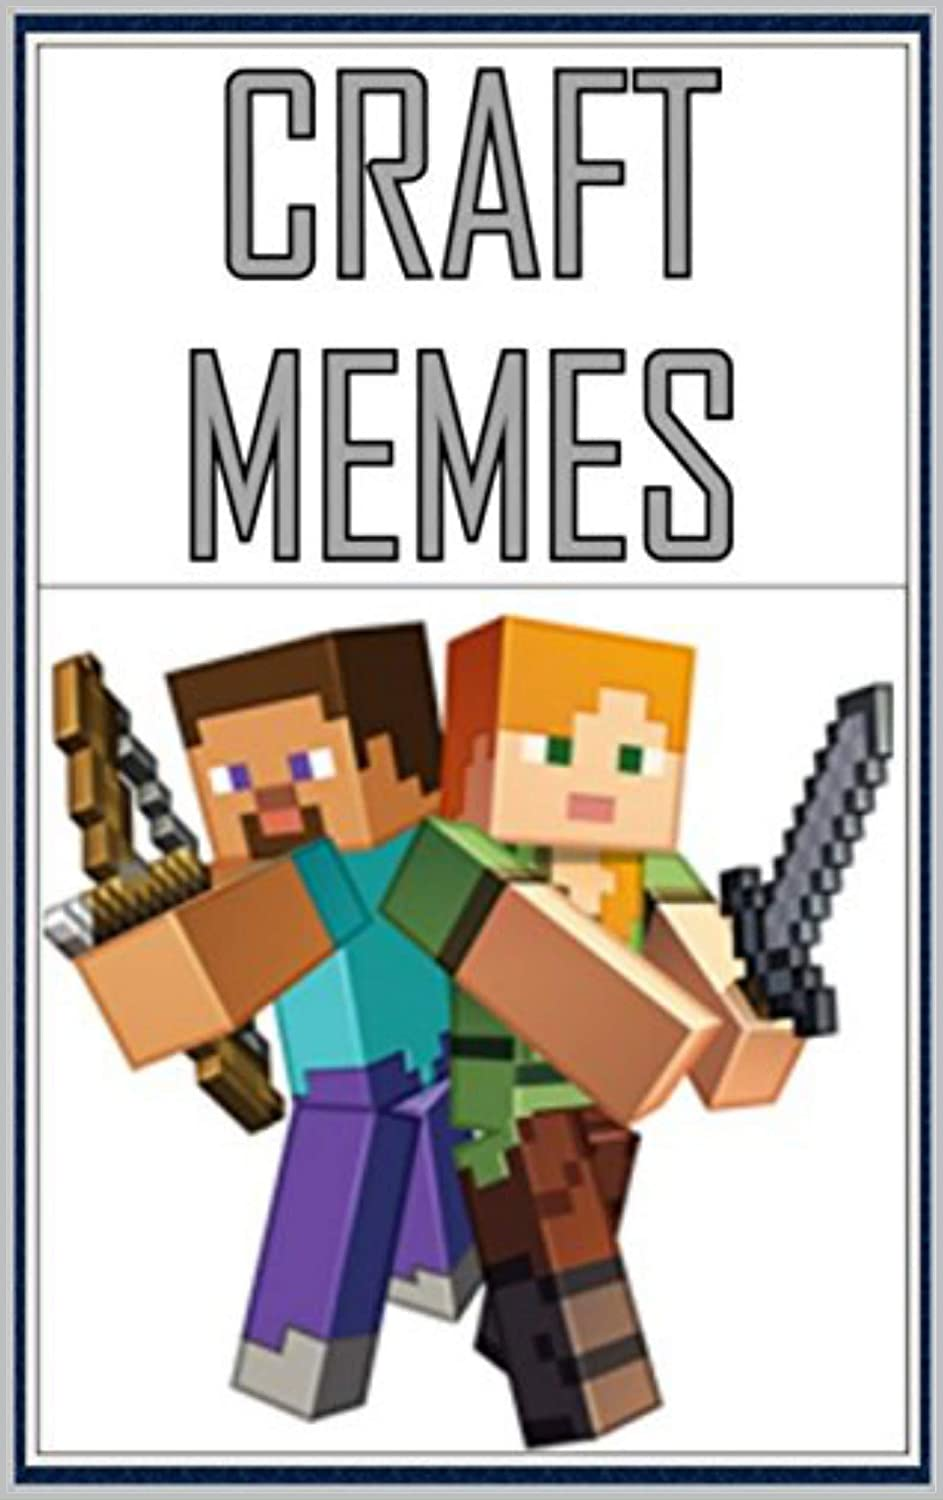 Memes Minecraft Memes Oh Goodness Memes These Funny Memes Are So